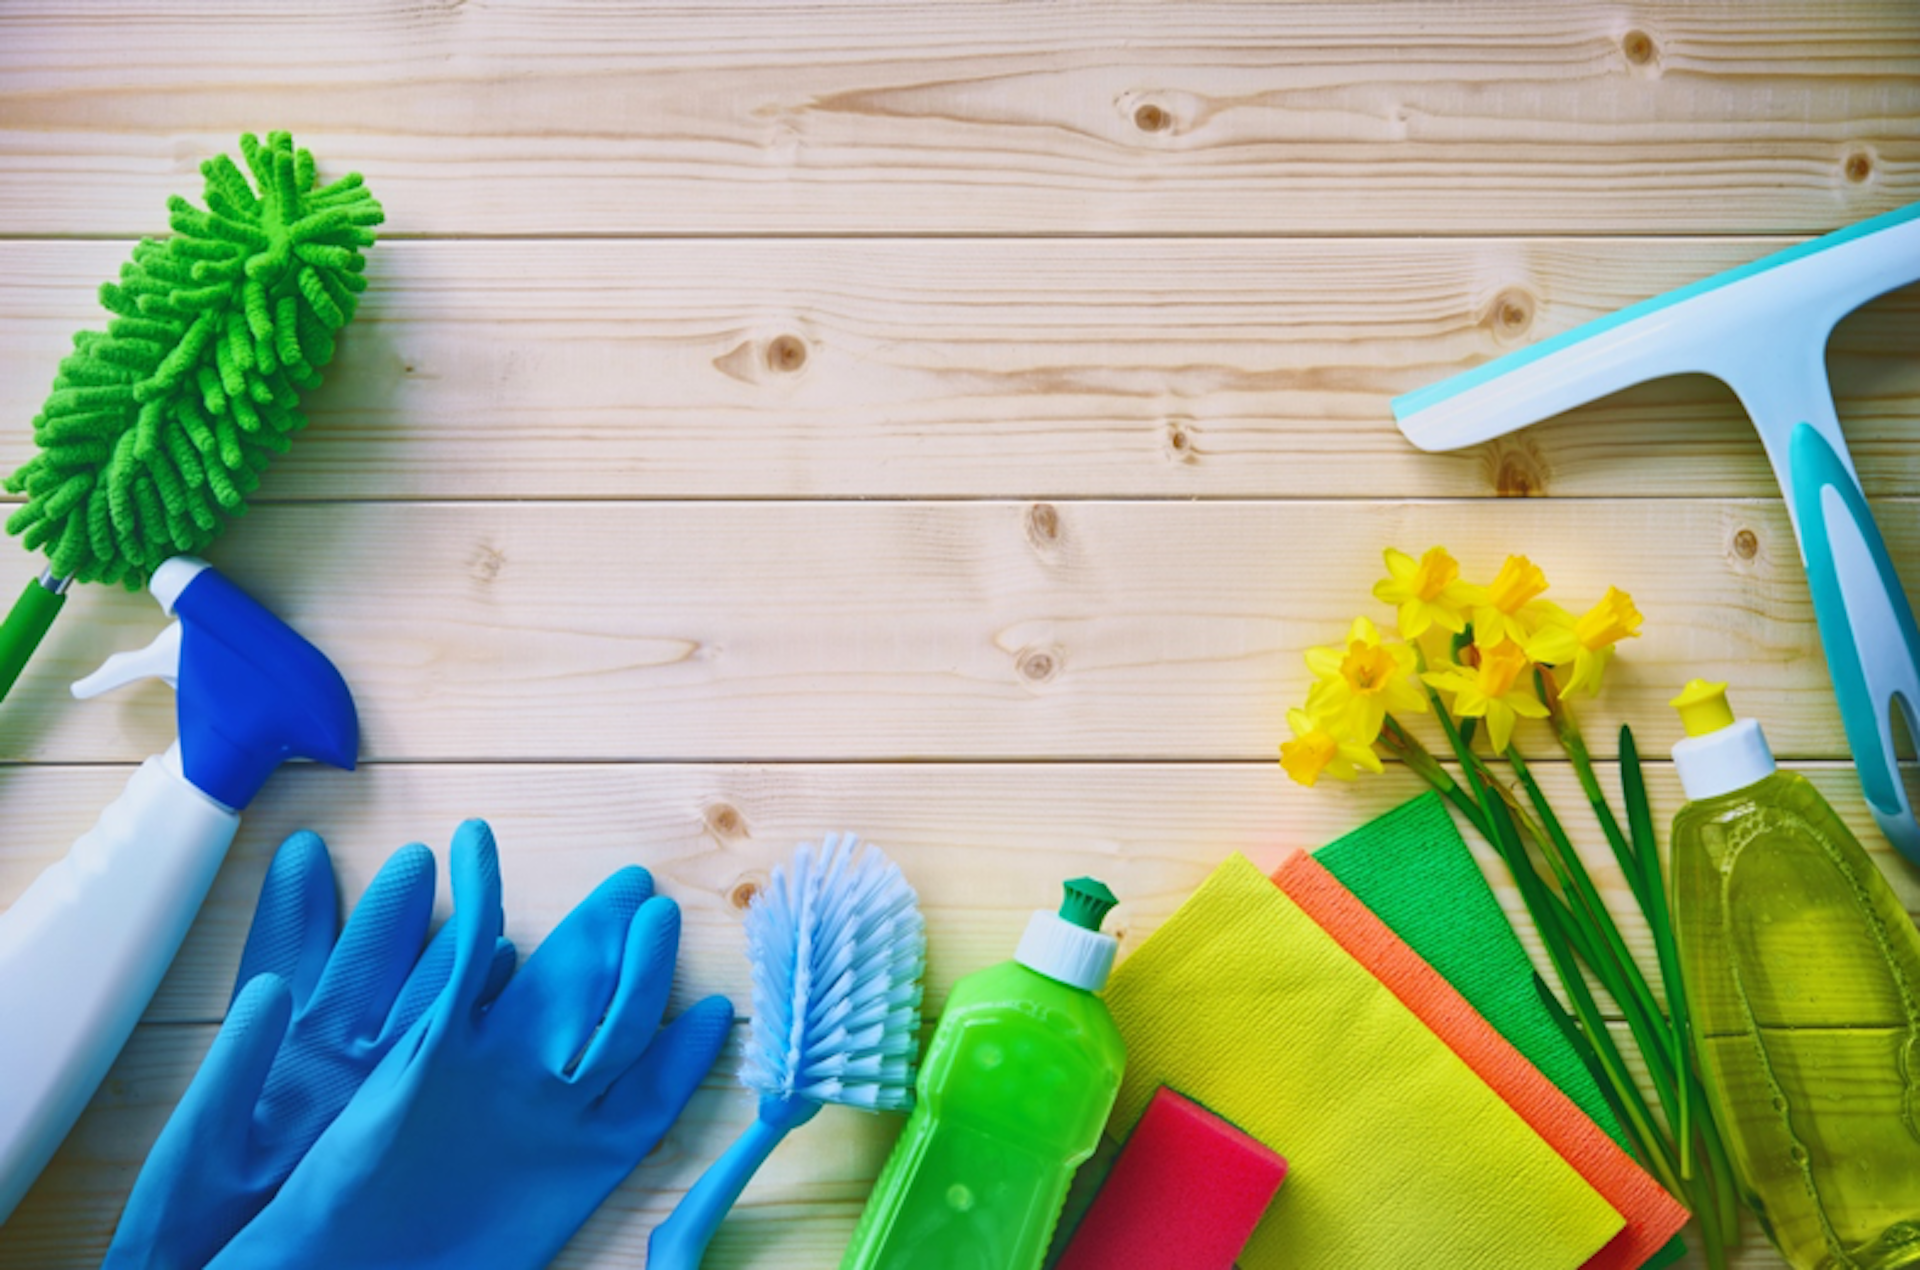 Plumbing should be part of your spring clean!